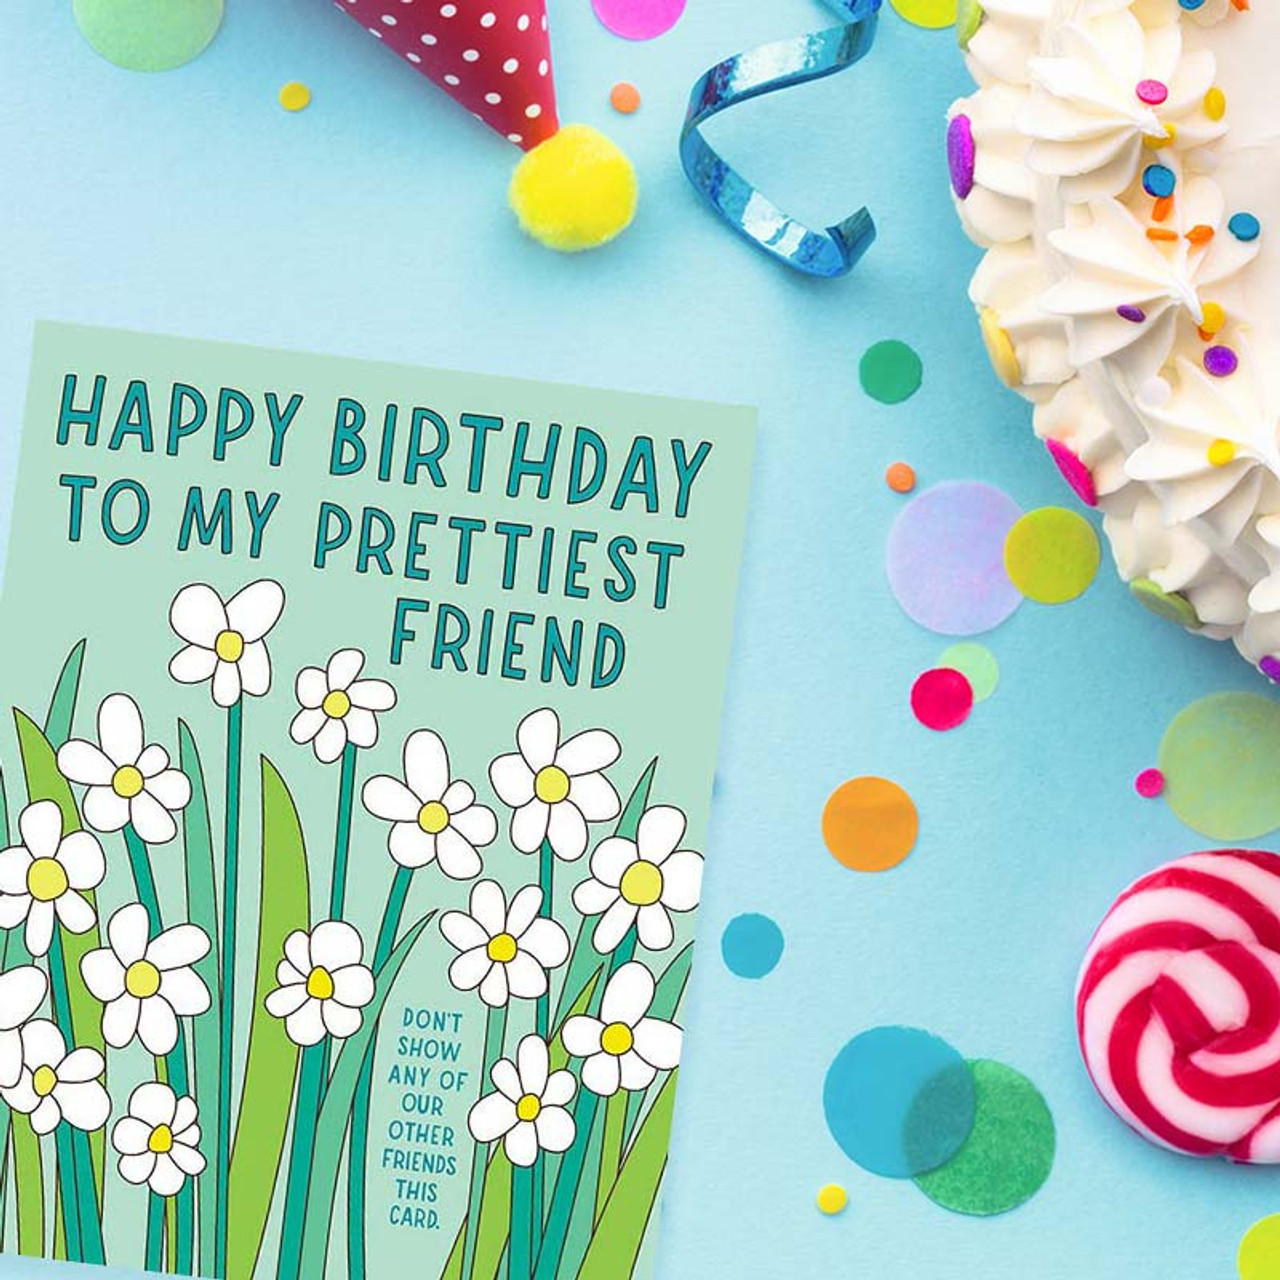 Funny card for your pretty friend's birthday!